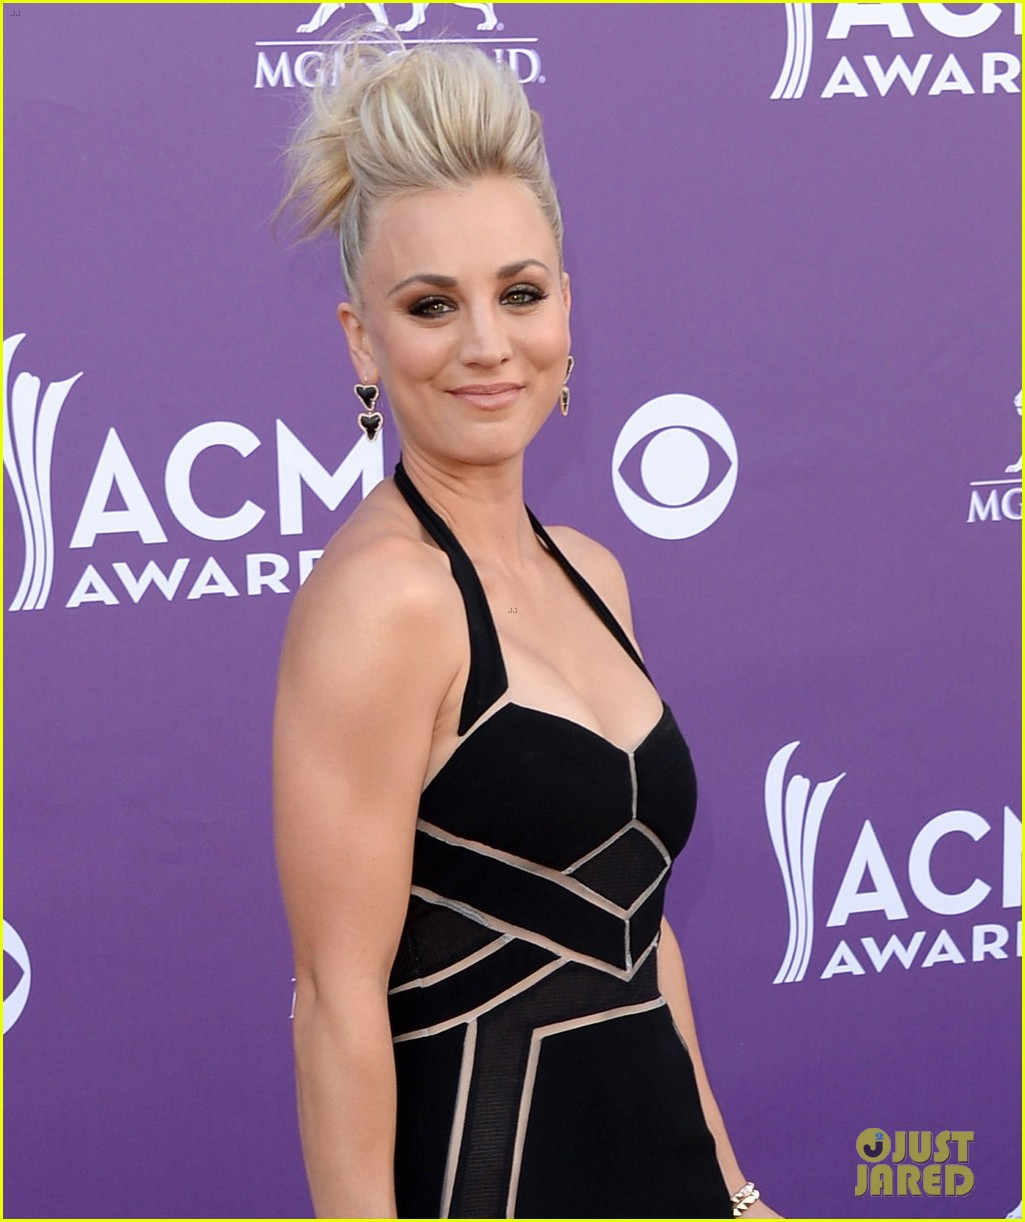 kaley cuoco beth behrs acm awards 2013 red carpet 032845145